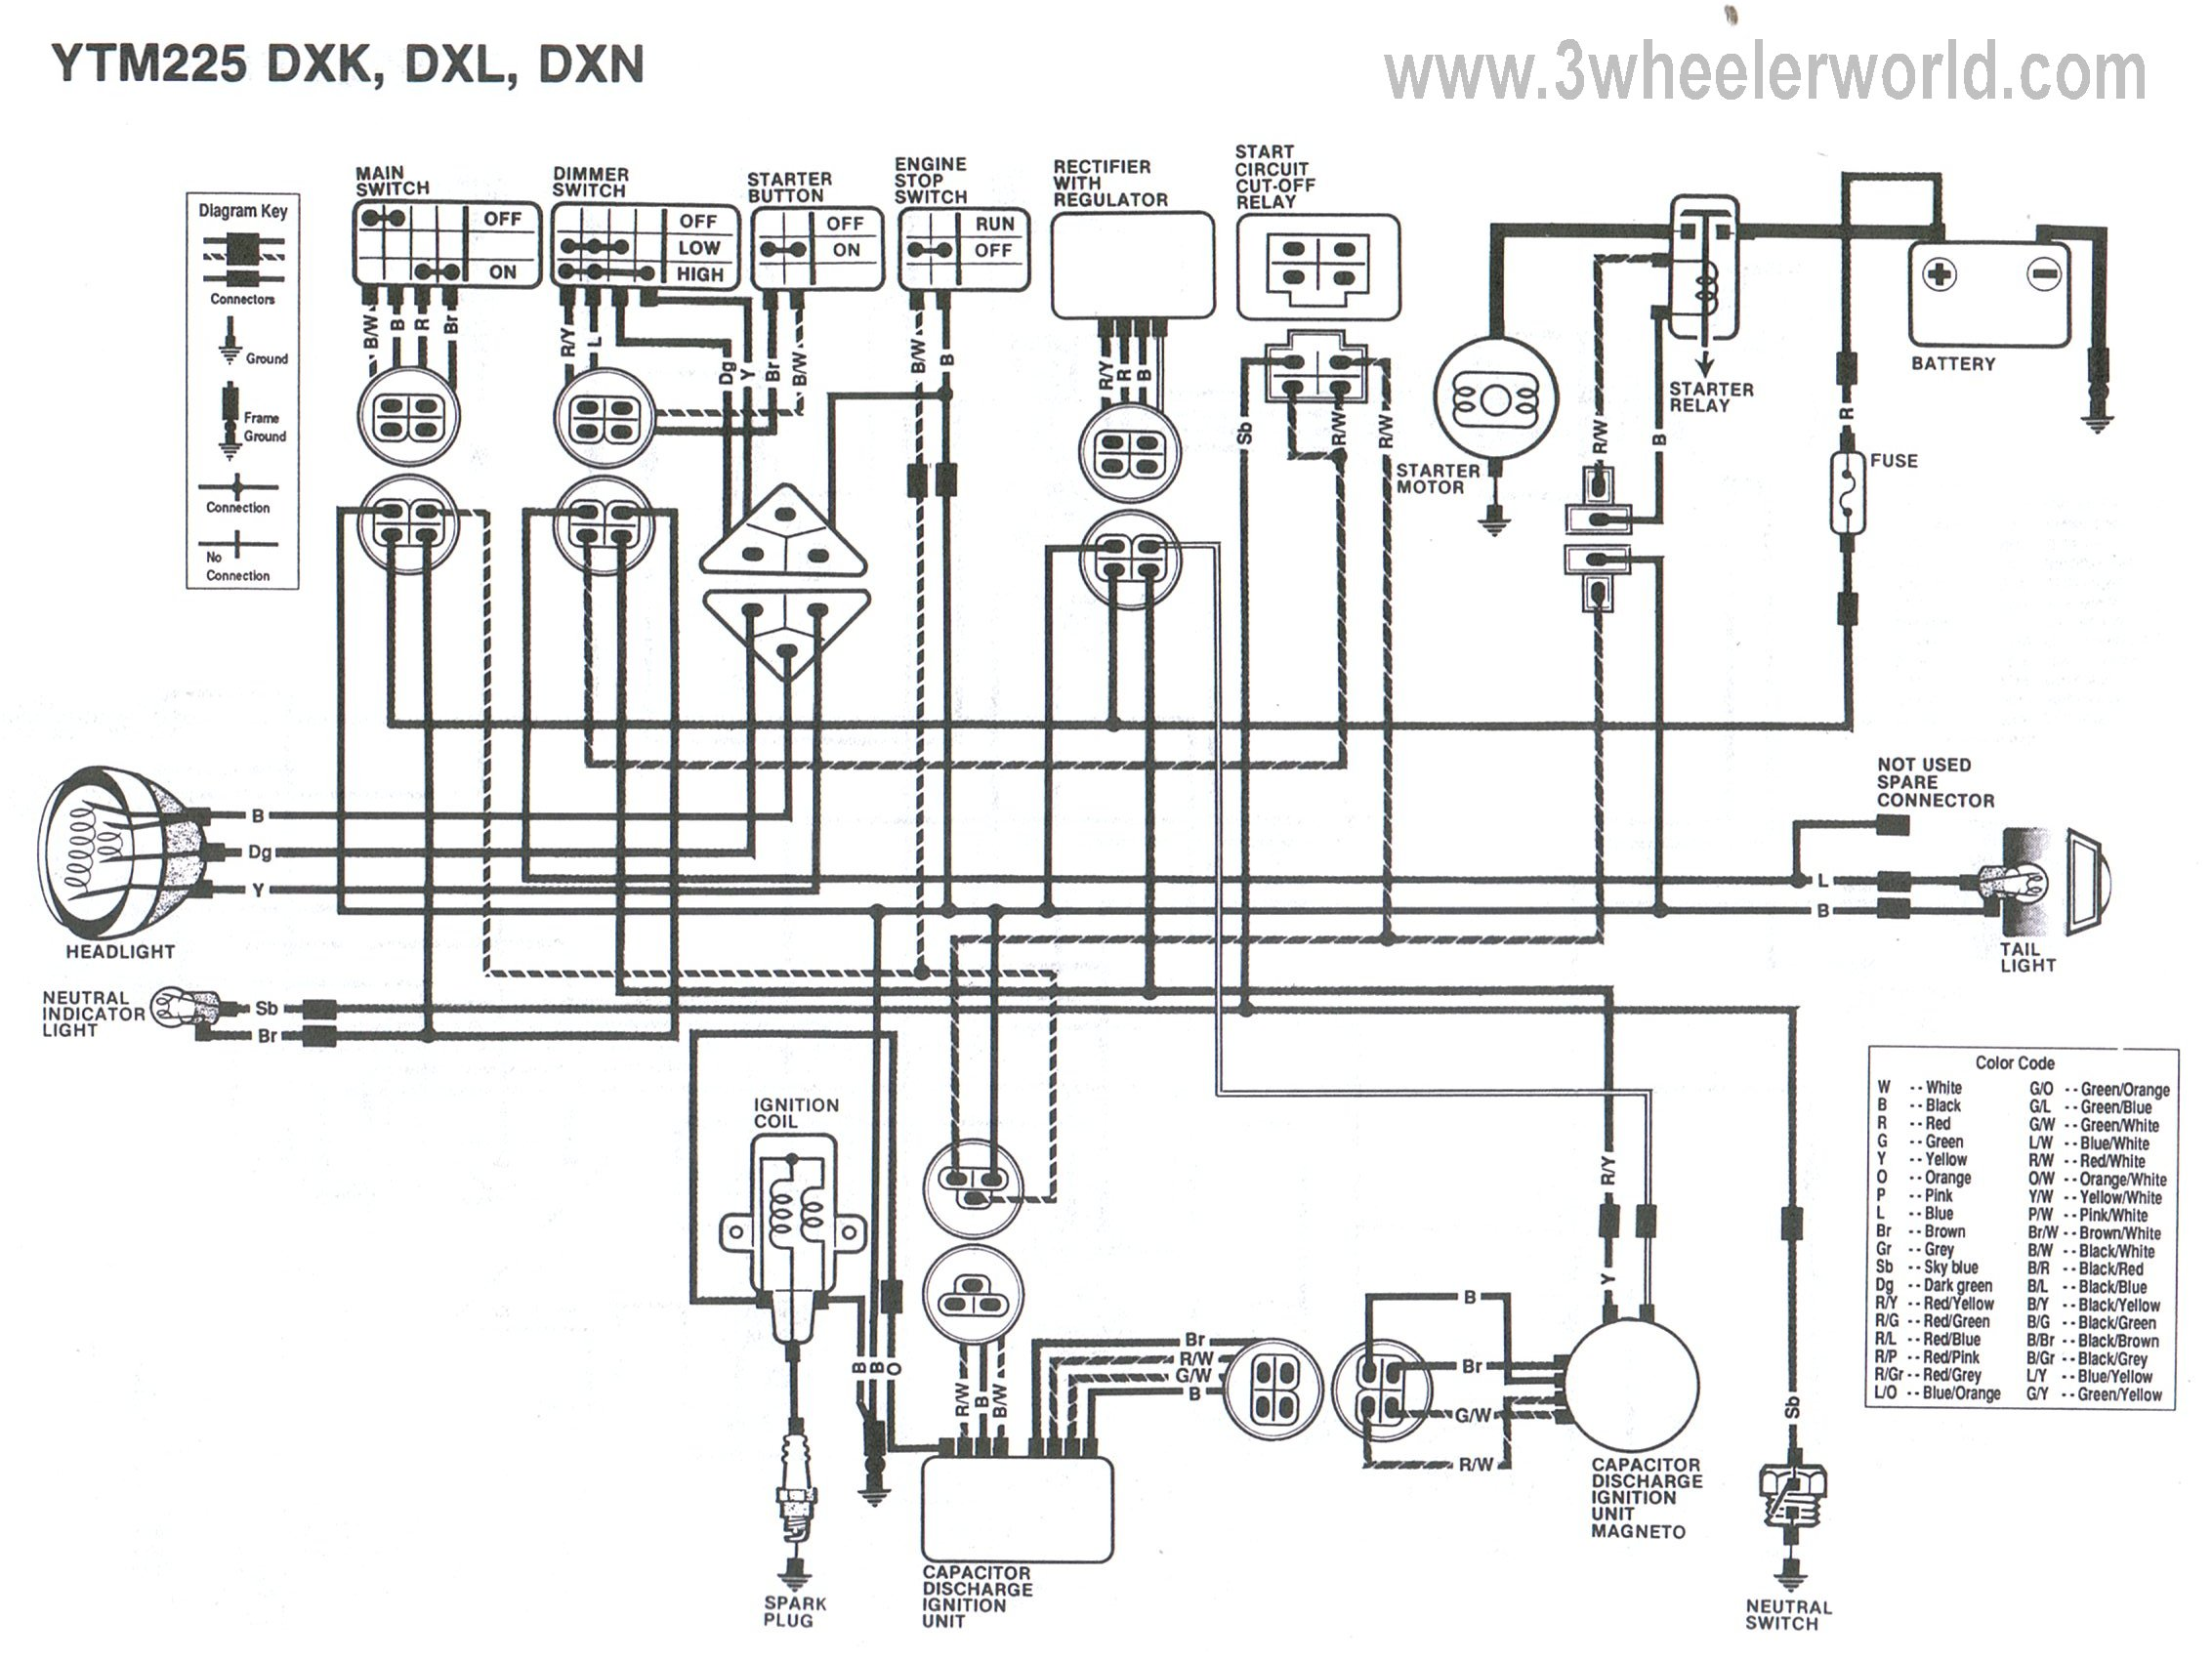 Kawasaki Klf300b Wiring Diagram Where Is The Reverse Switch